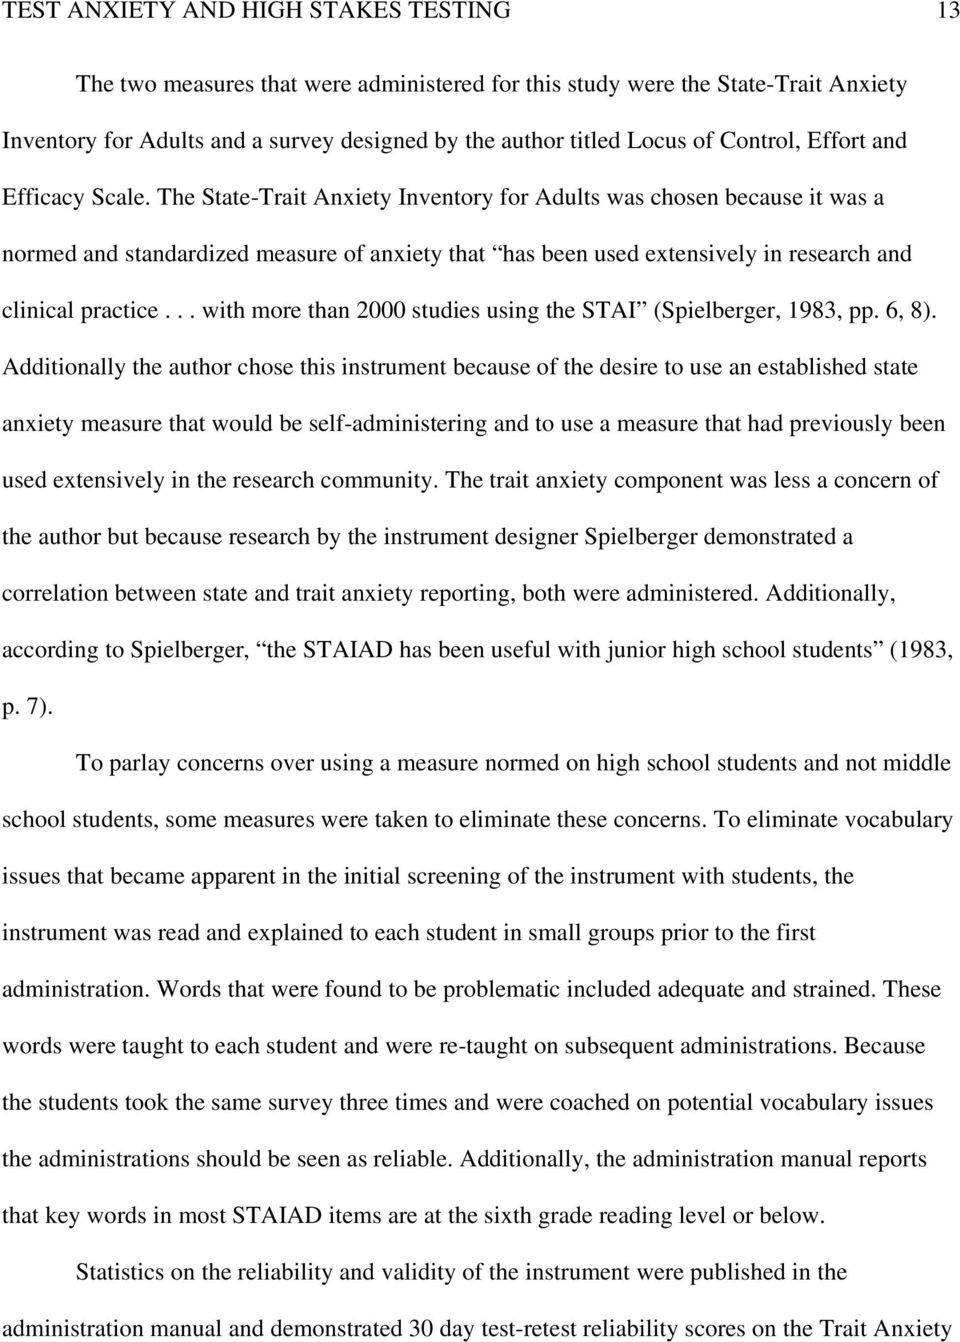 high stakes testing research proposal essays coursework sample letter to state and federal legislators on the